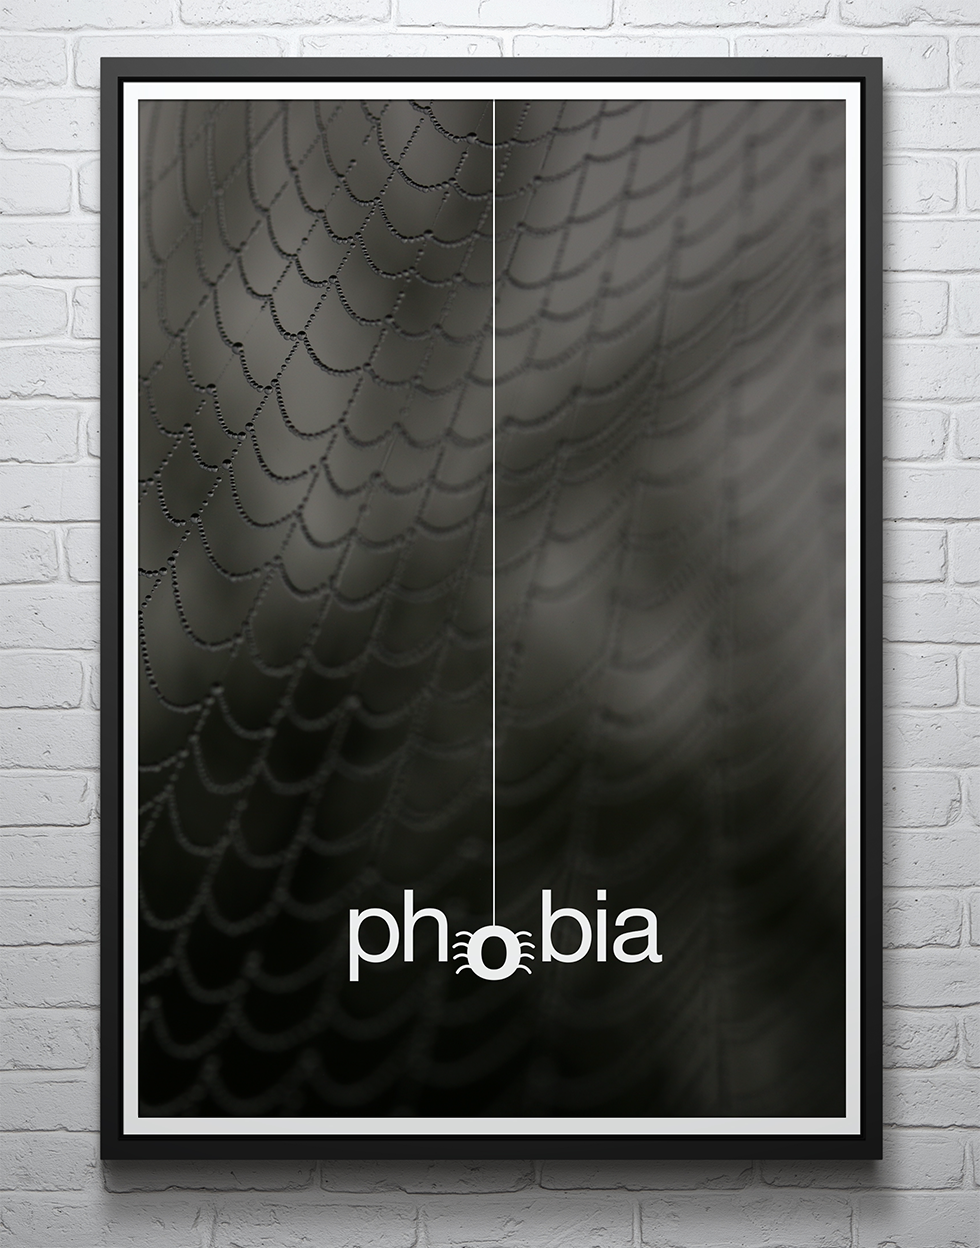 Typographic poster illustrating phobia